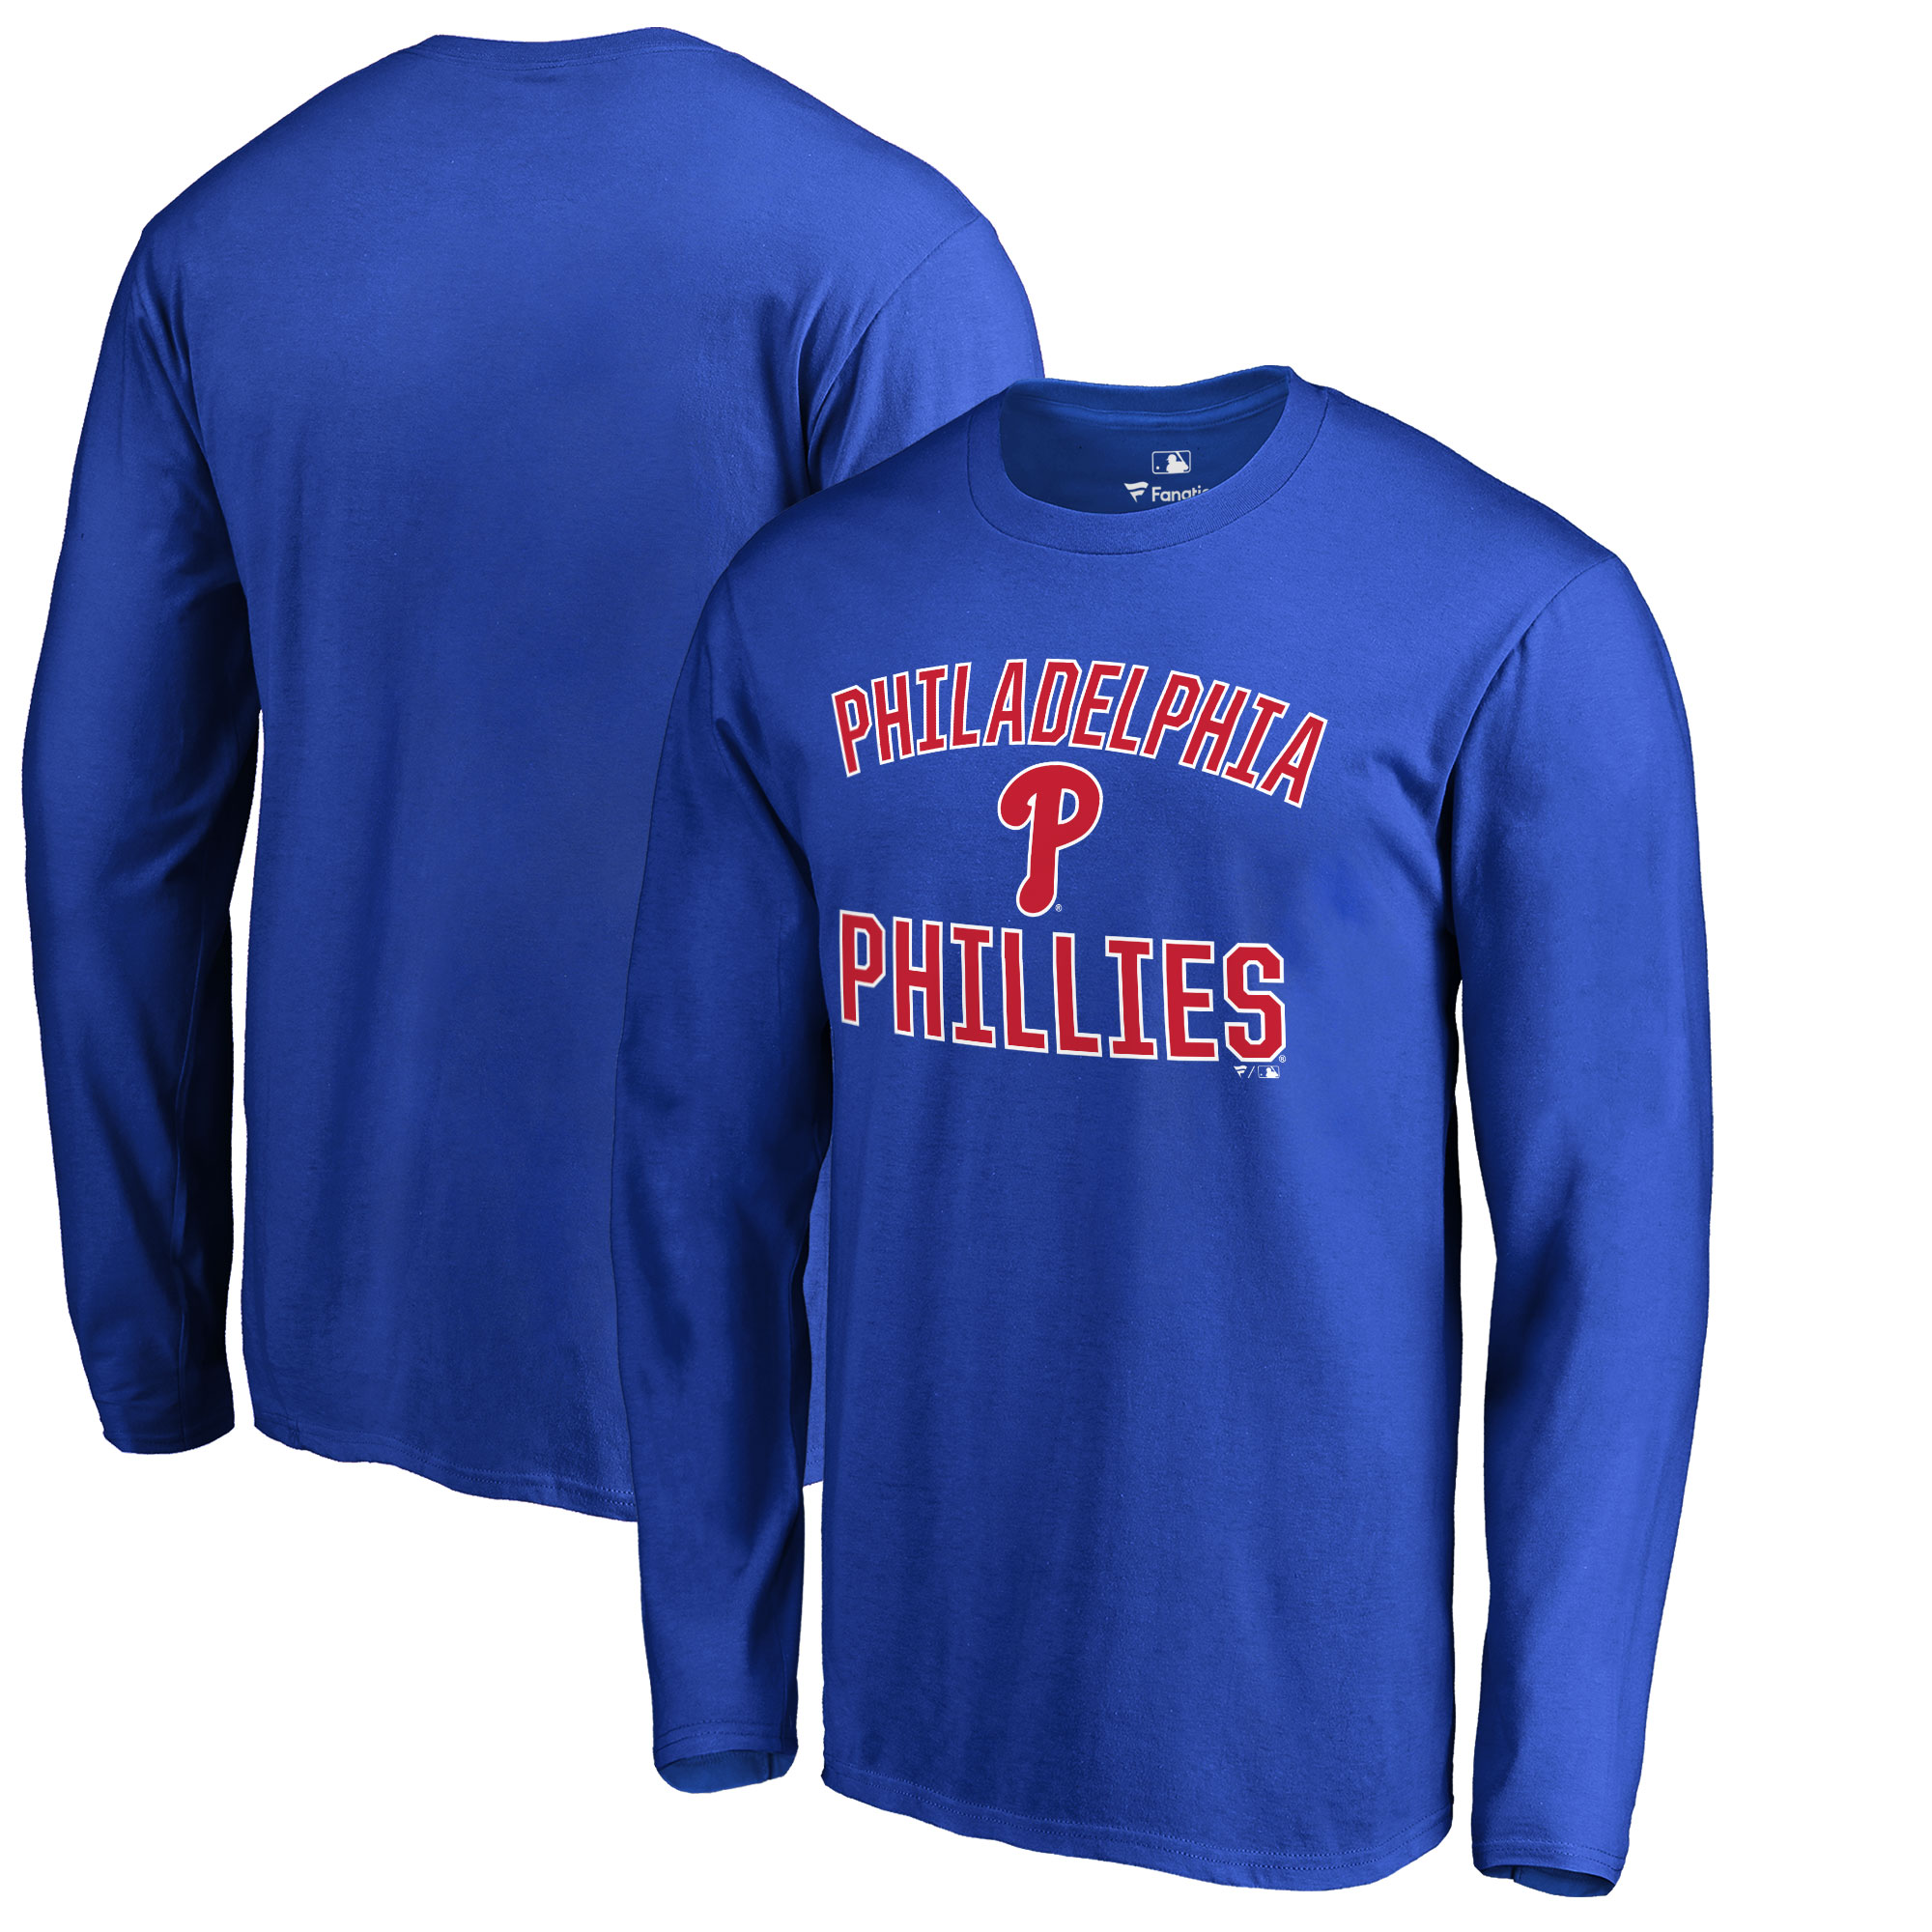 Philadelphia Phillies Victory Arch Long Sleeve T-Shirt - Royal